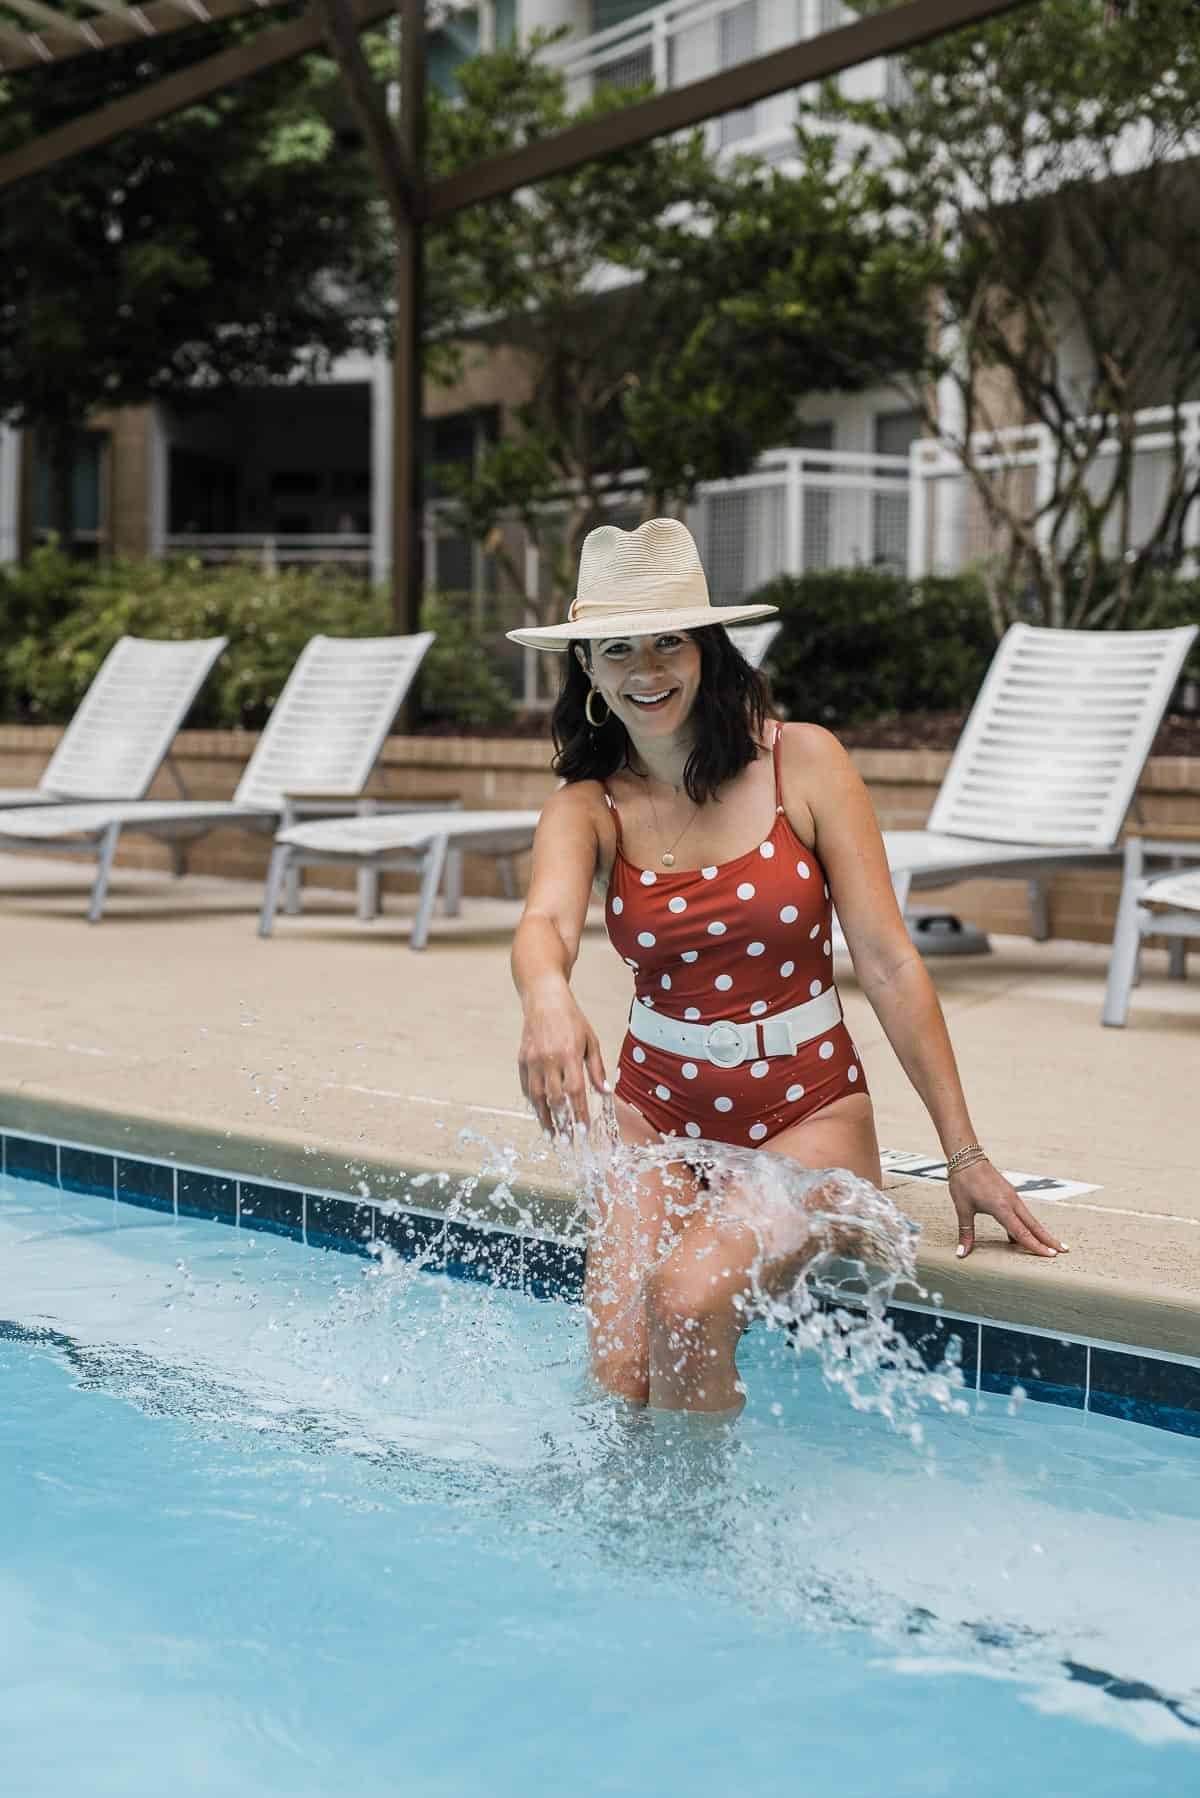 Polka dot one piece swimsuit featured